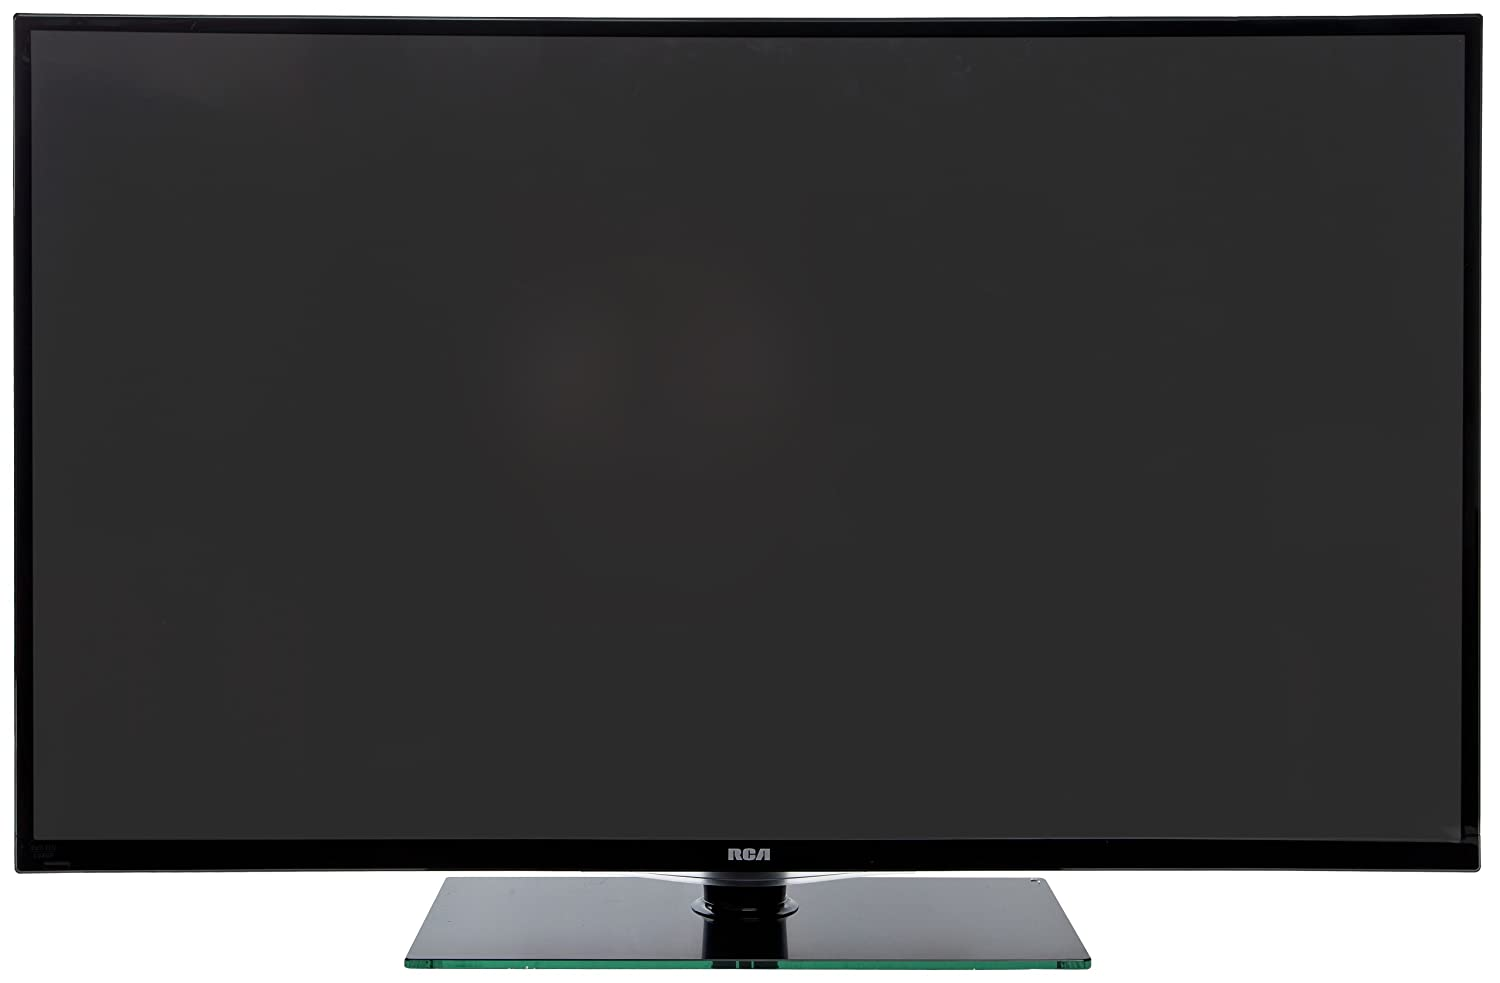 RCA LED50B45RQ 50-Inch 1080p 60Hz LED HDTV (Black)